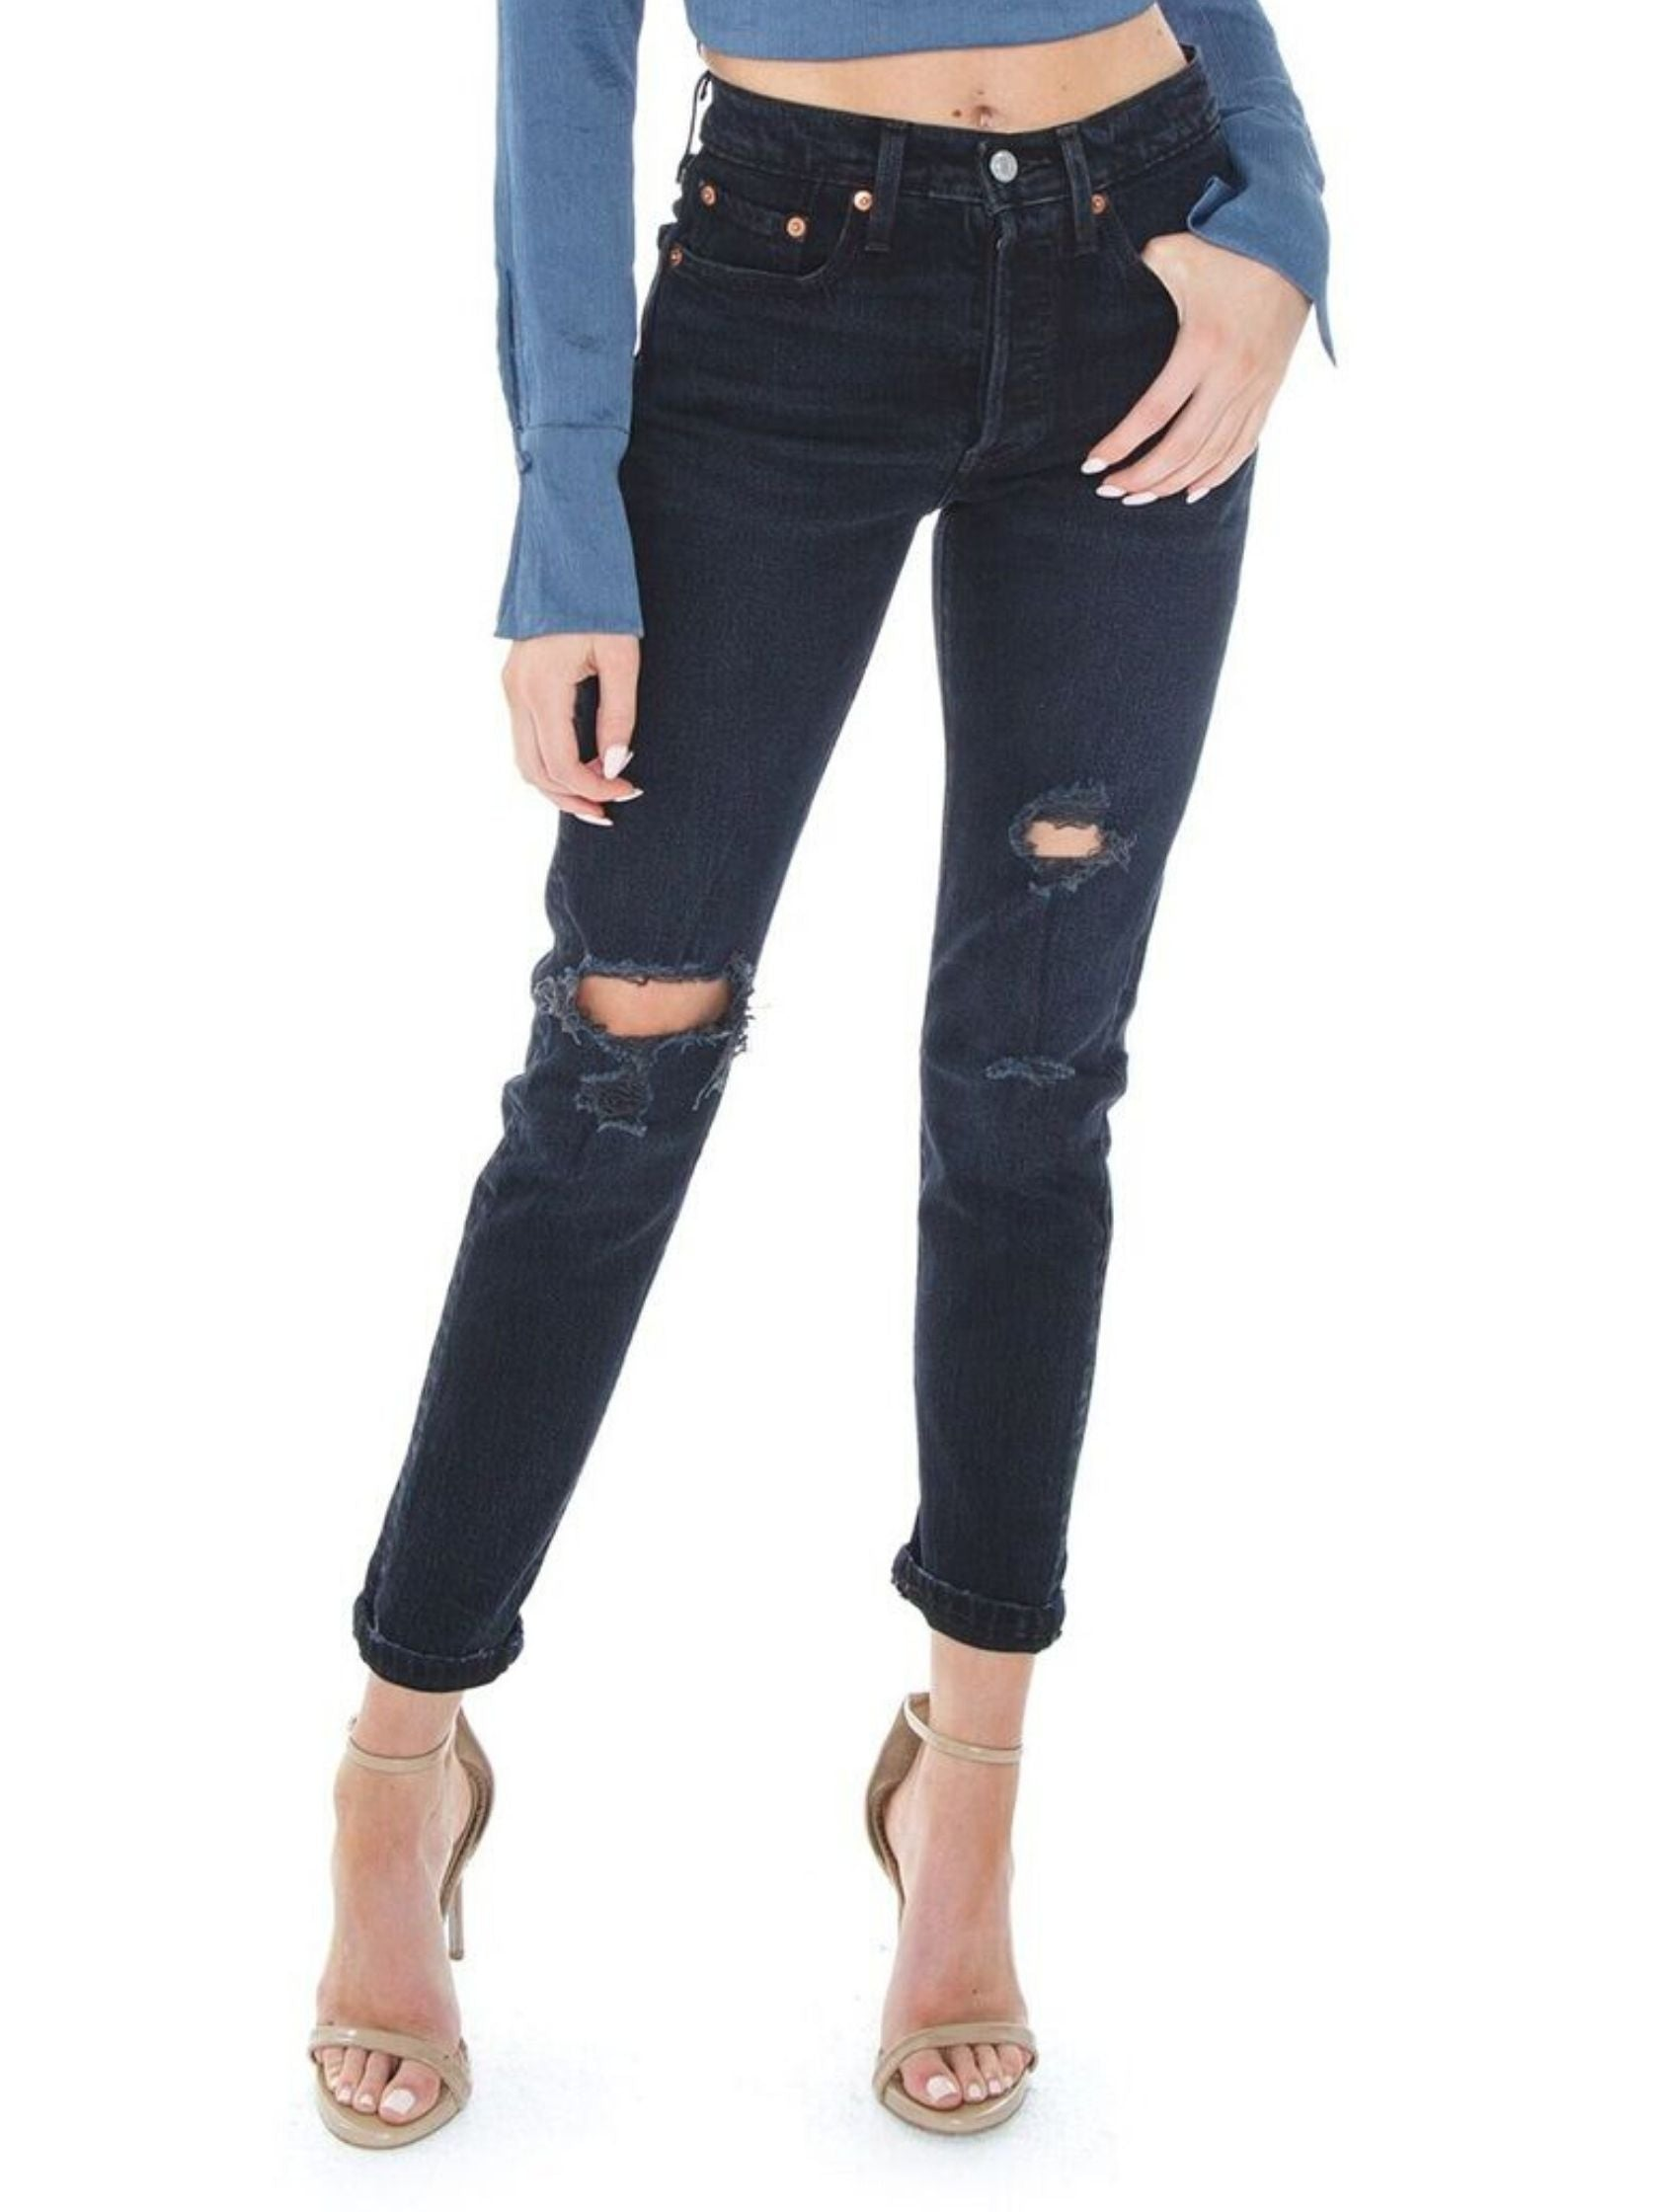 Woman wearing a denim rental from Levis called 501 Skinny